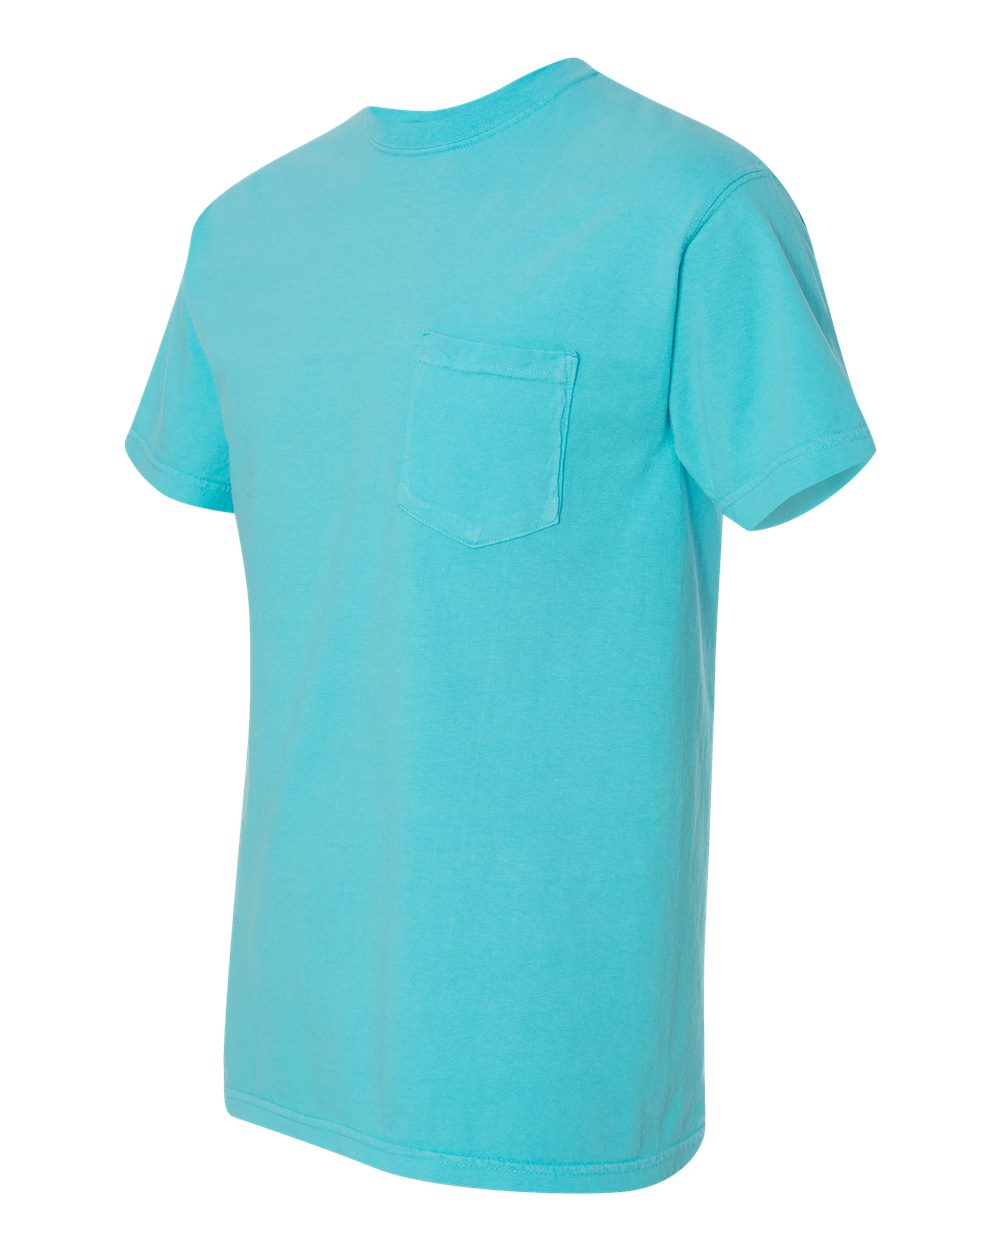 Comfort-Colors-Men-039-s-6-1-oz-Garment-Dyed-Pocket-T-Shirt-6030CC-S-3XL thumbnail 54